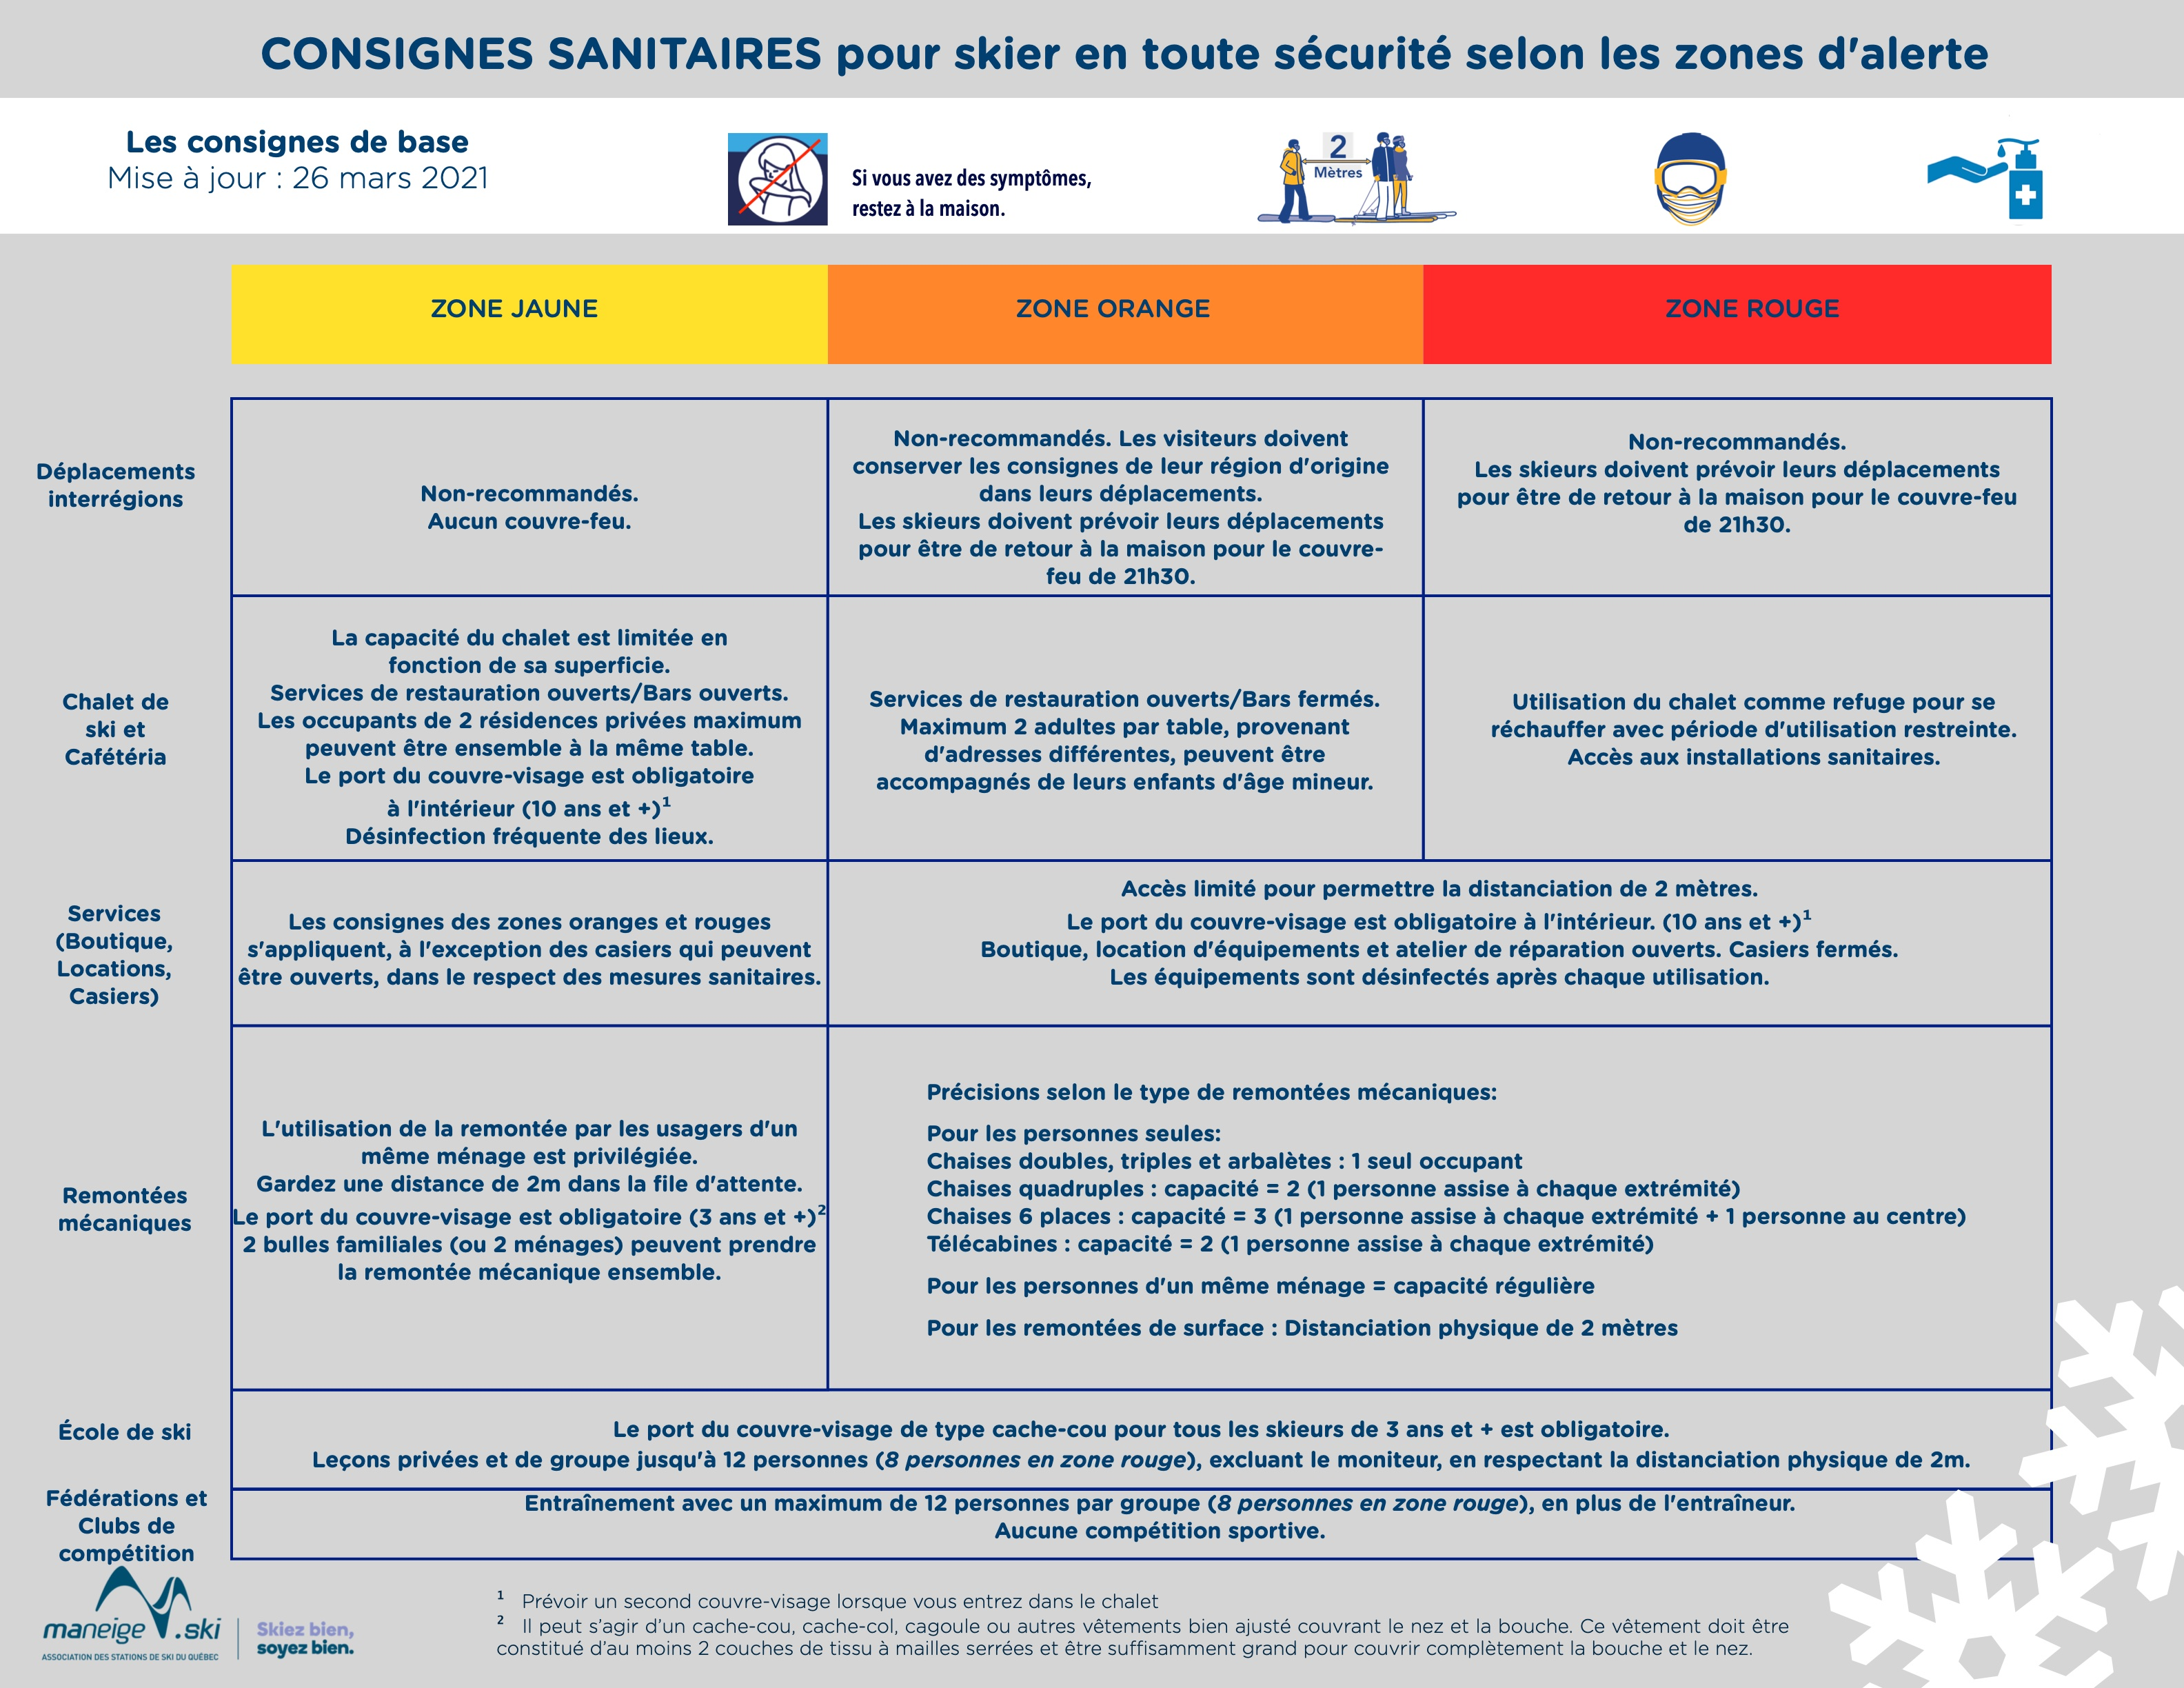 ConsignesSanitaires_Tableau_FR_VF